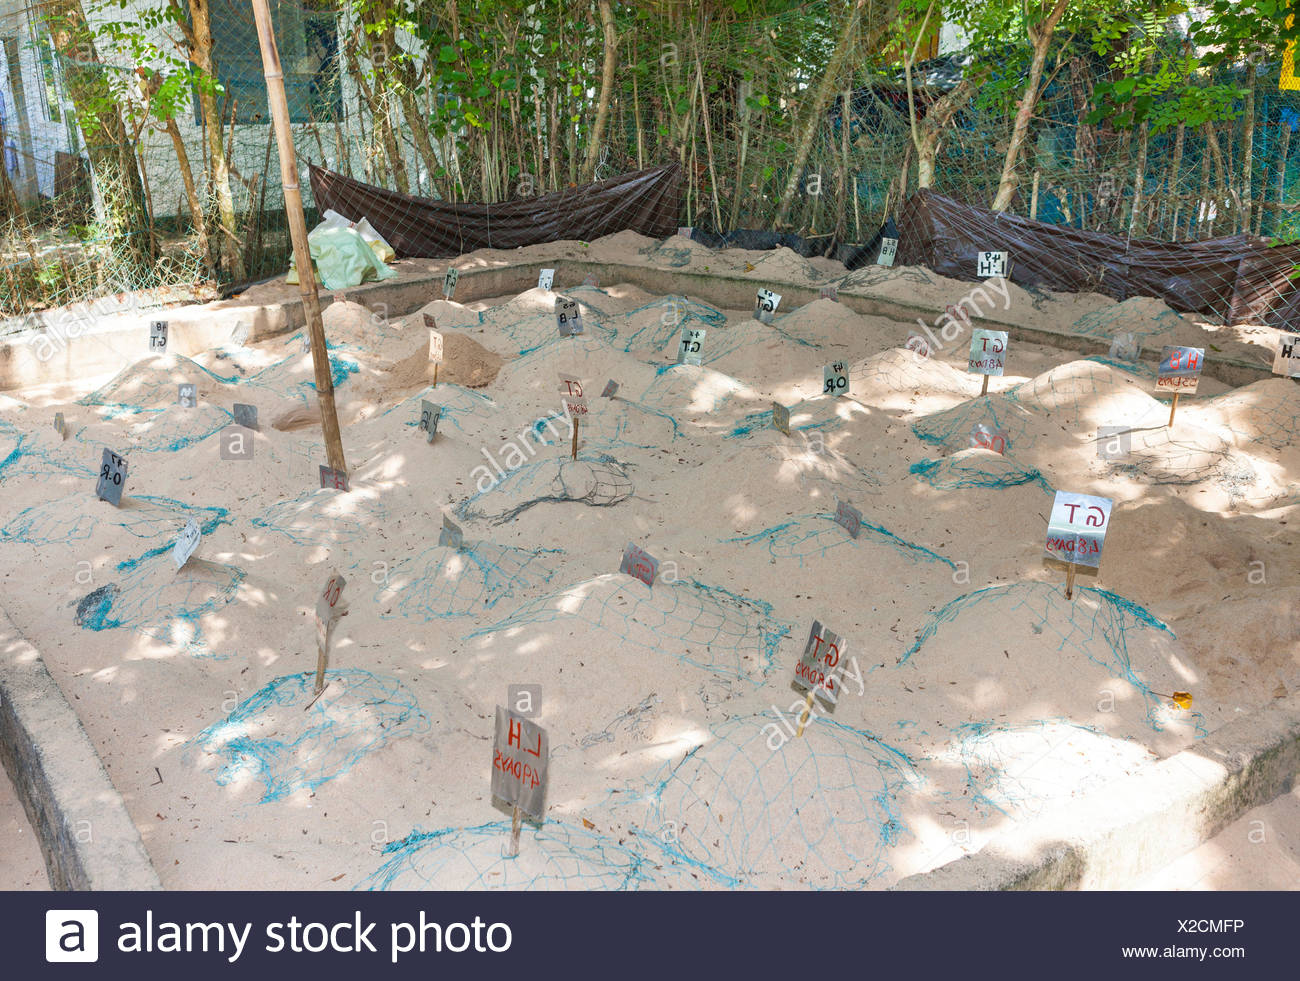 Breeding station for sea turtles, near Kosgoda, Hegalla Piyagama Region, Southern Province, Sri Lanka - Stock Image